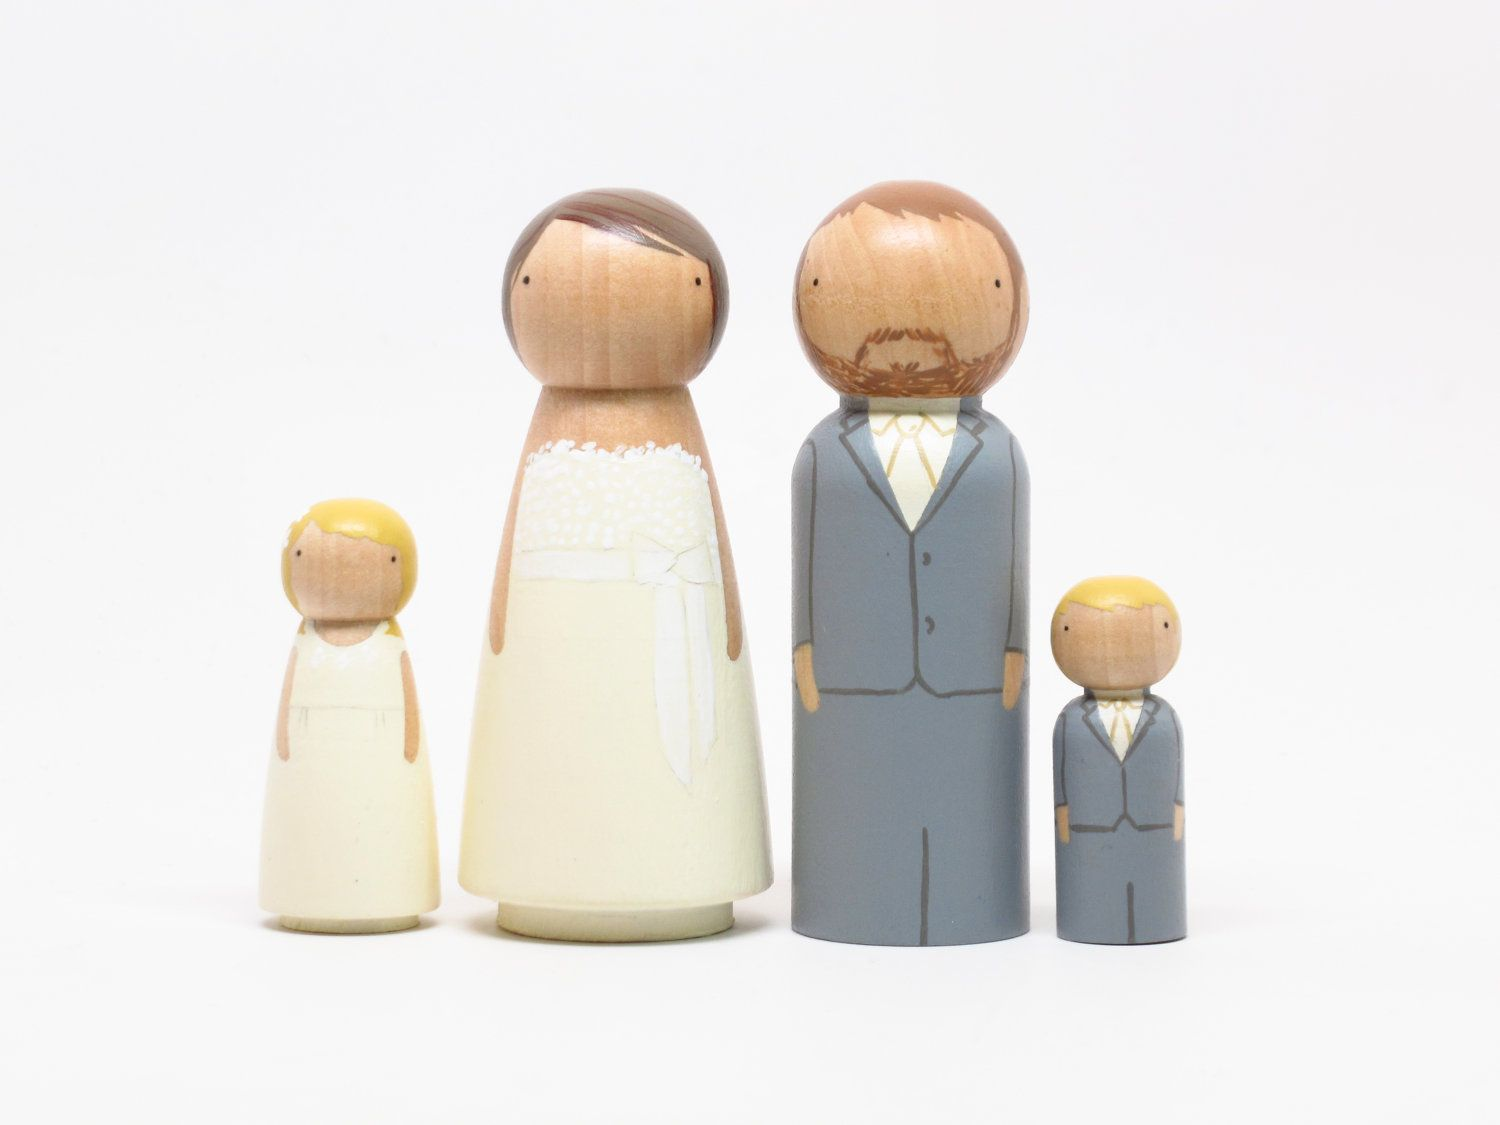 Personalized wedding cake toppers bridegroom wedding decor with two